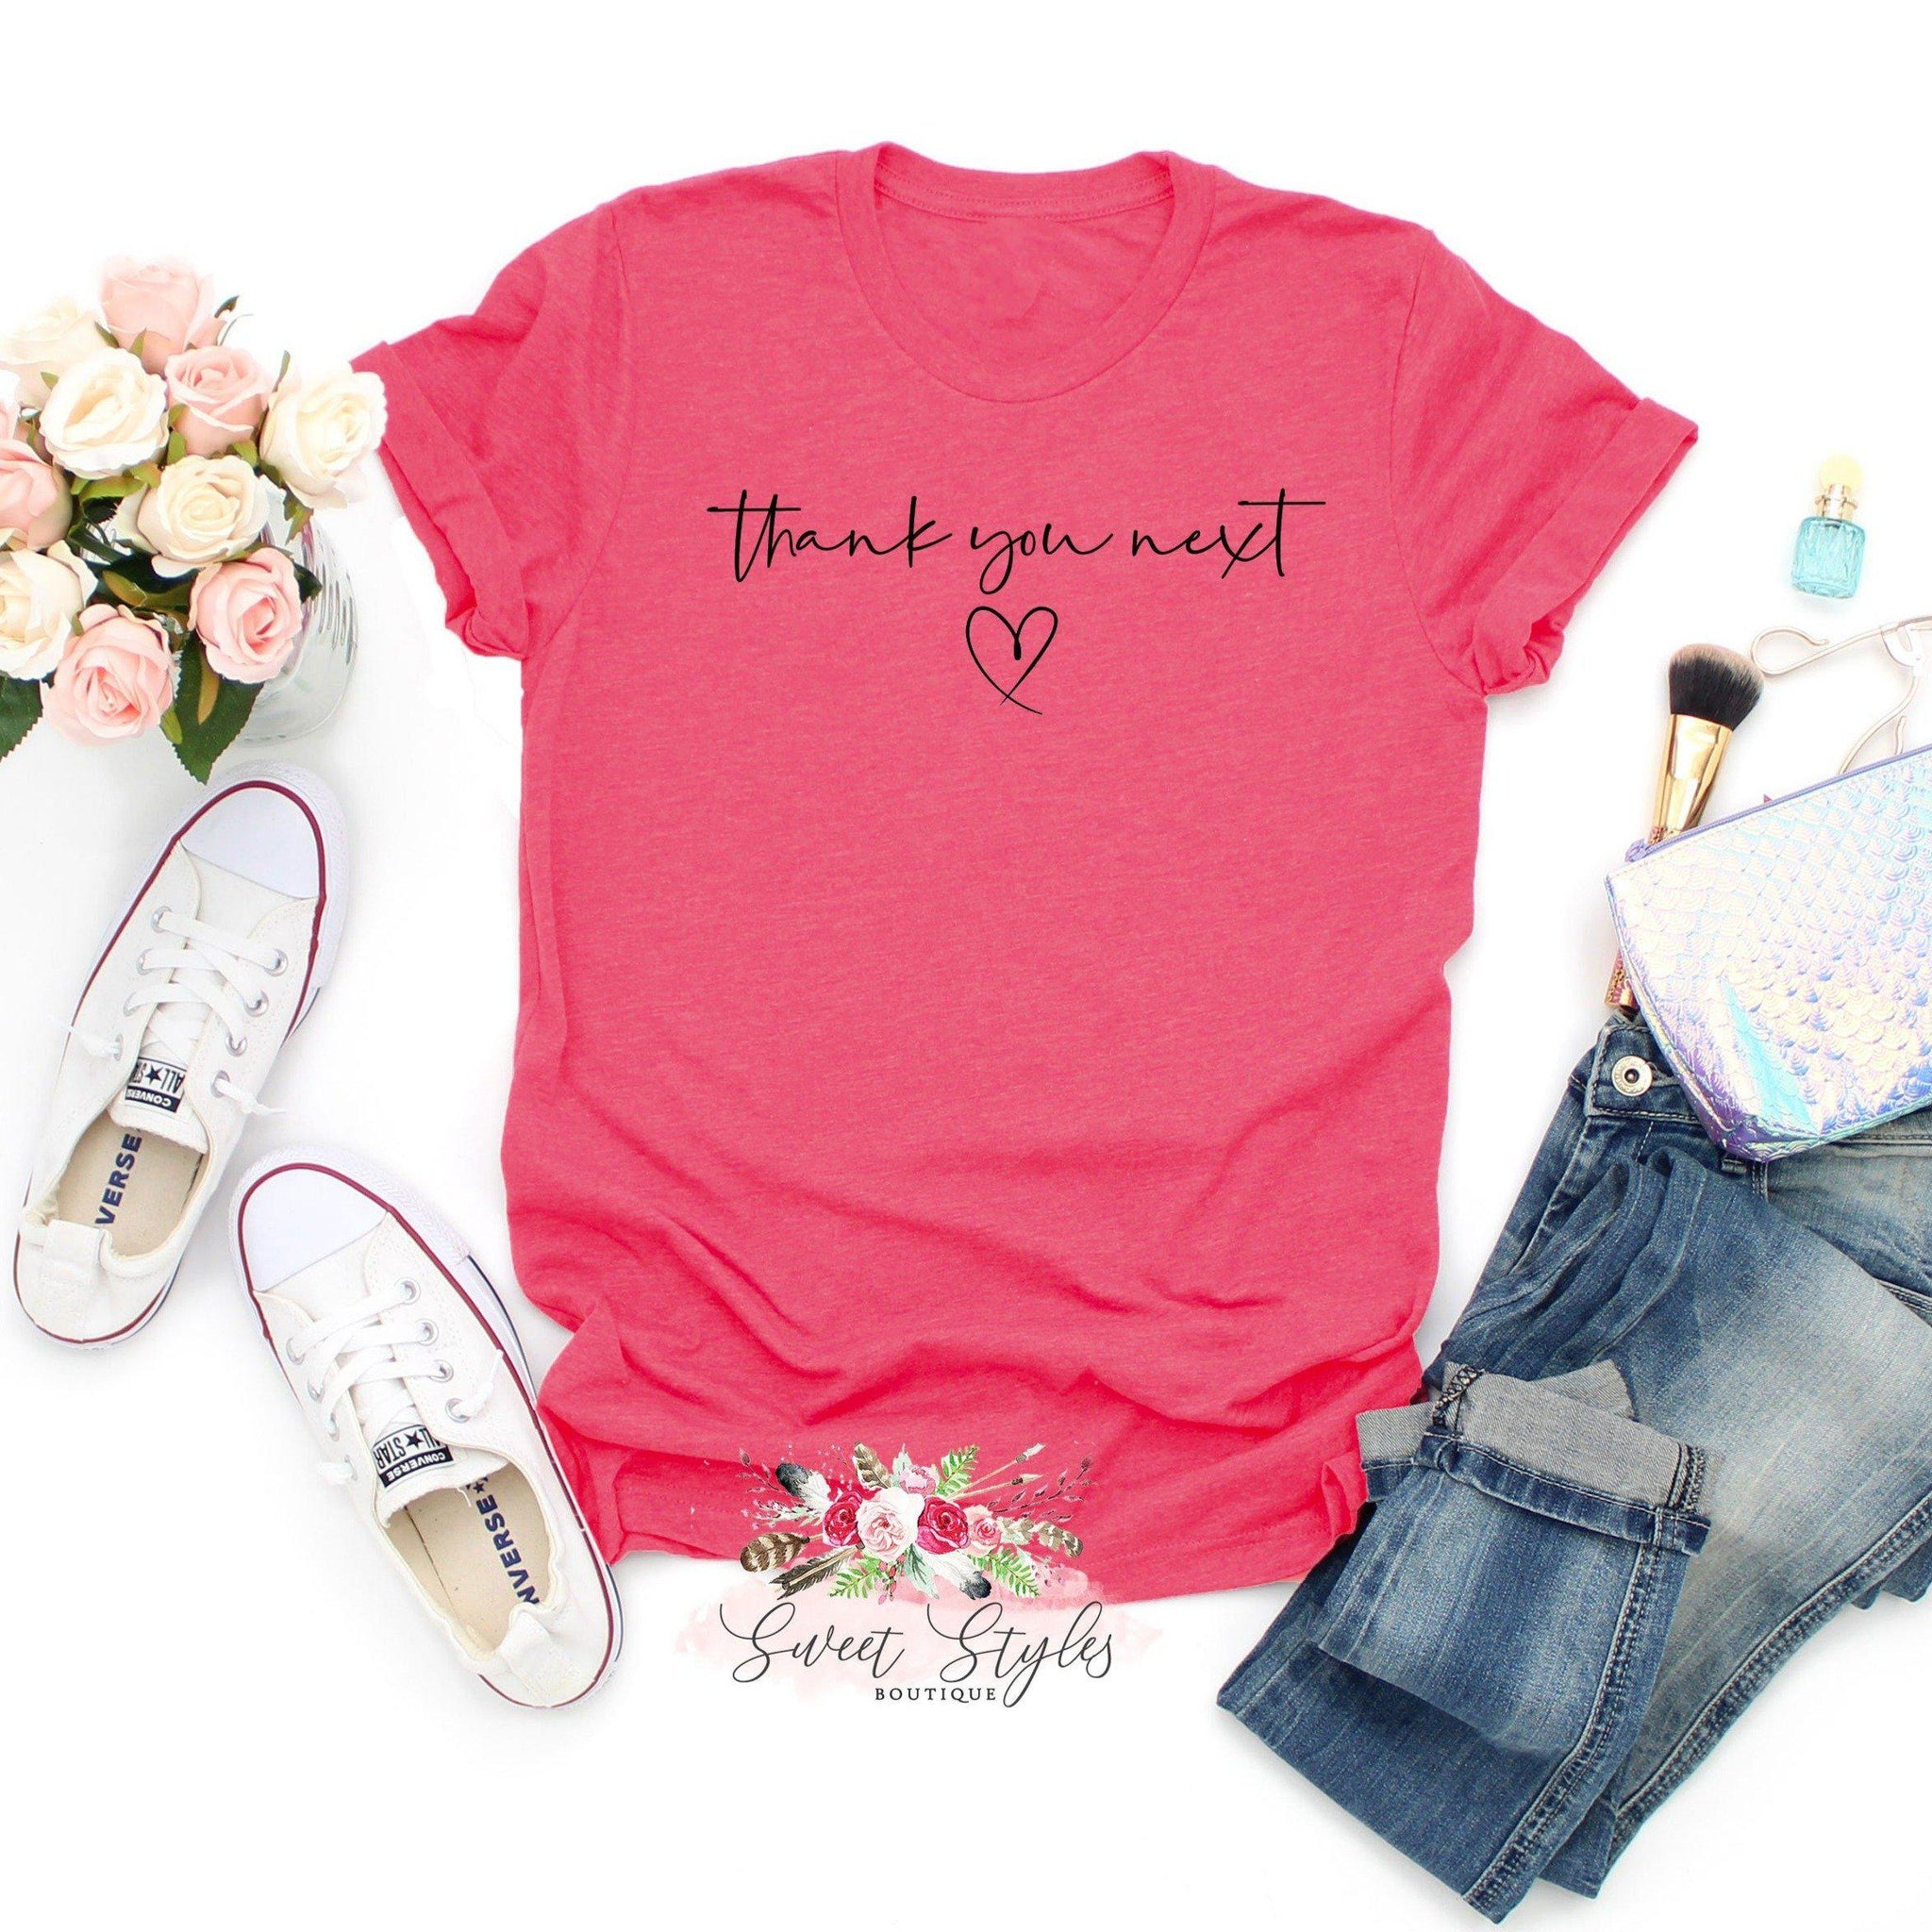 Thank you next lyric T-shirt-Sweet Styles boutique